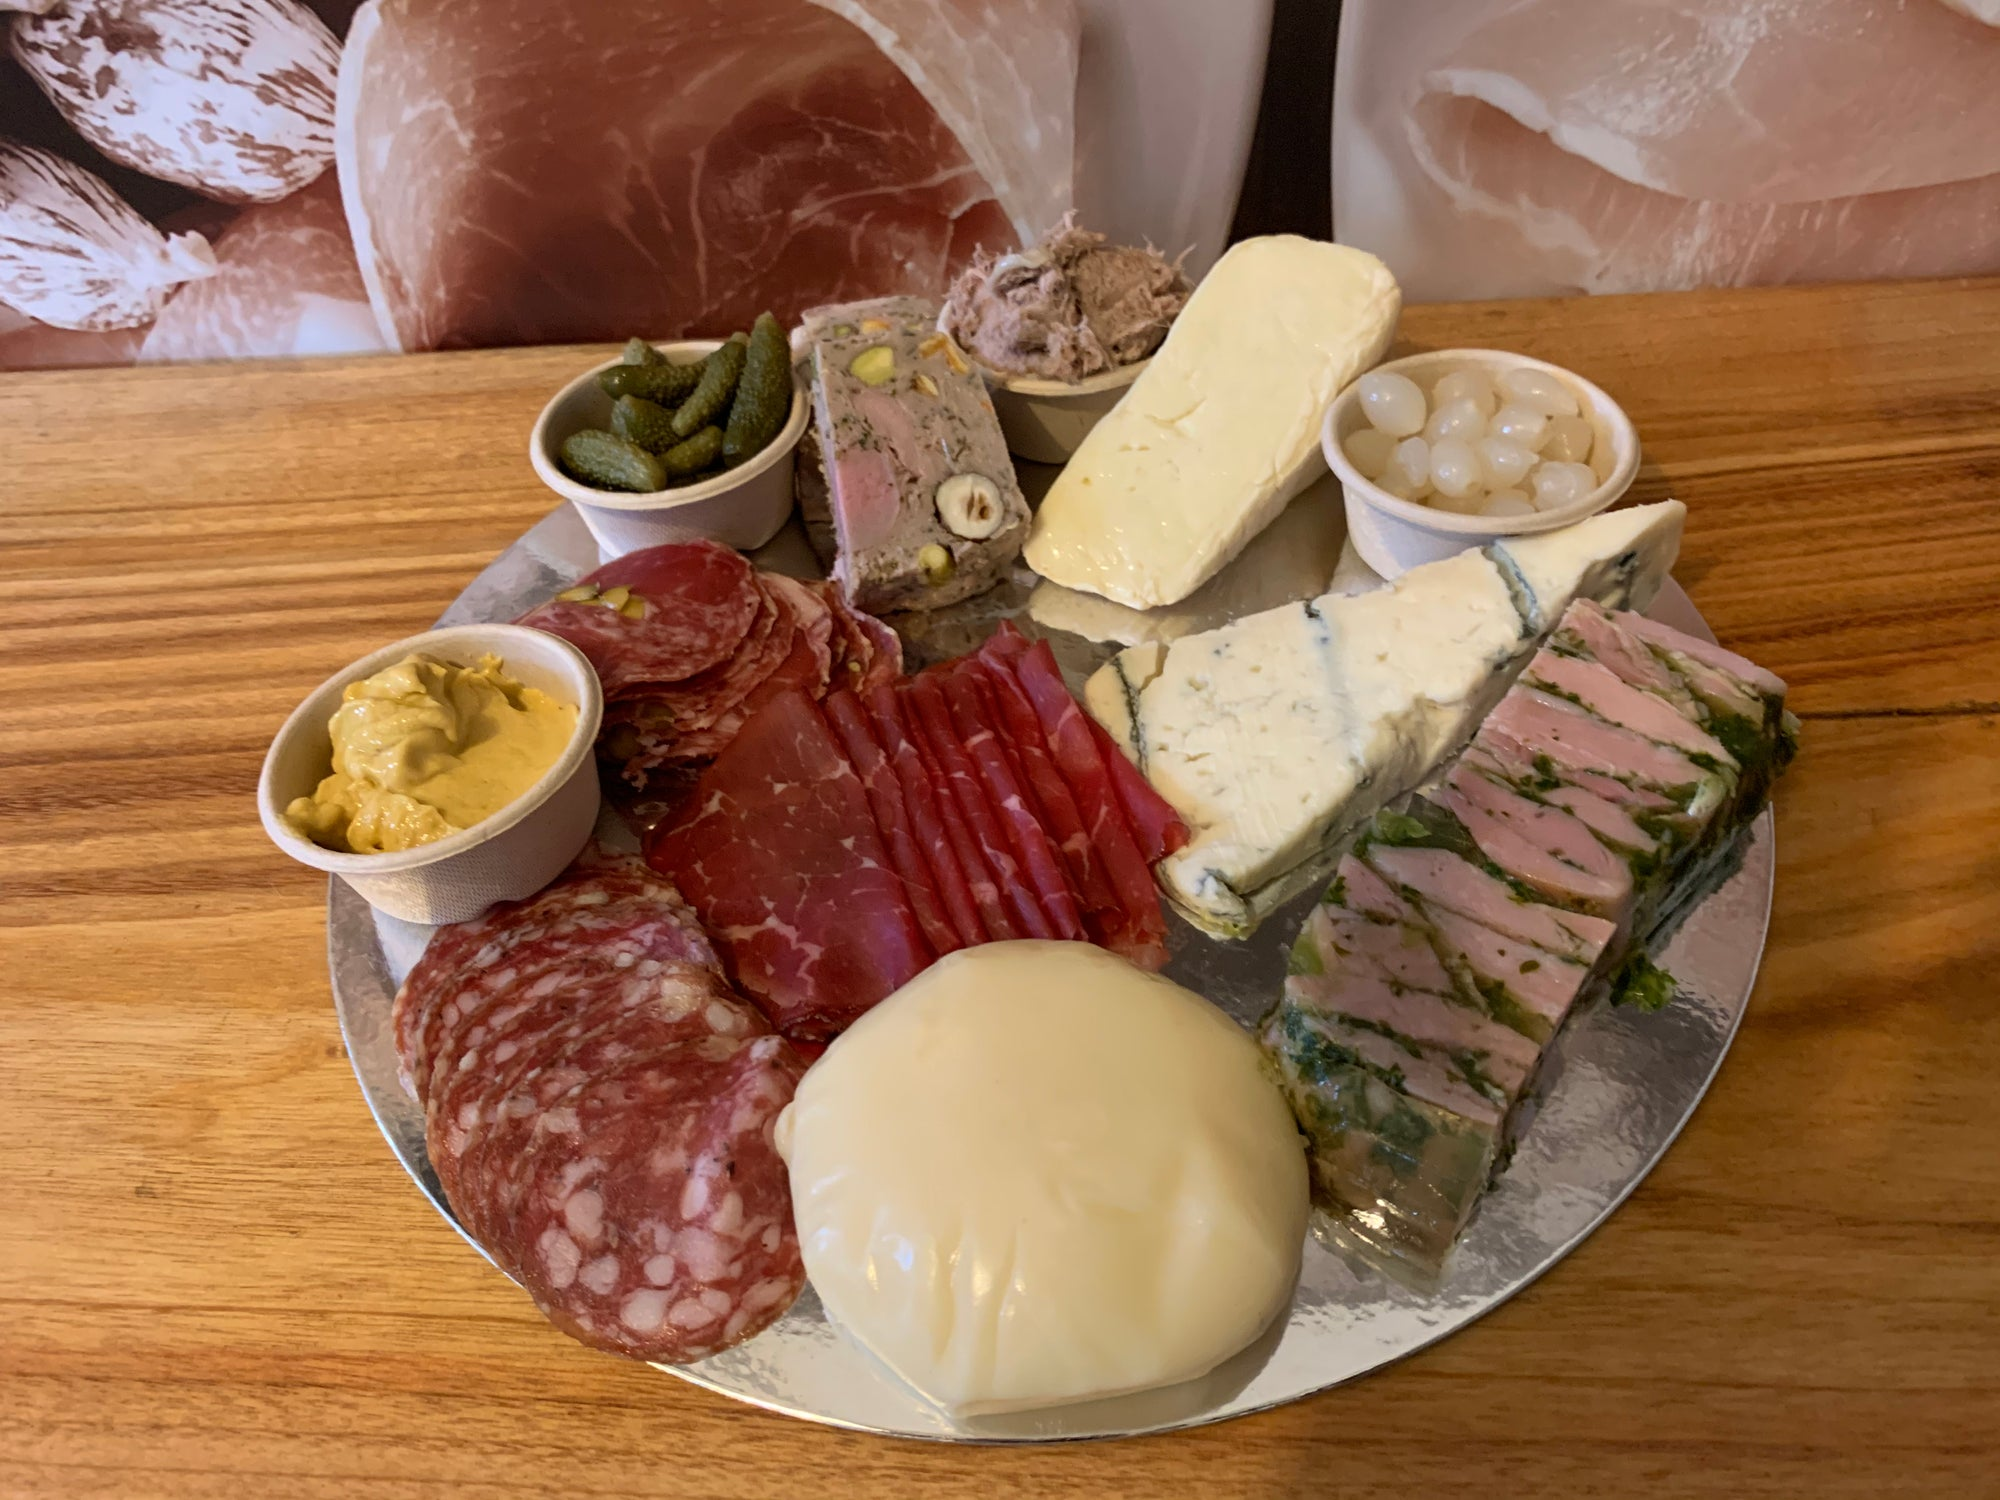 Platter - Stephs Gourmet Foods Platter French Gourmet Cheese Sauscission Stephs Gourmet Foods salumi Stephs Gourmet Foods Stephs Gourmet Foods